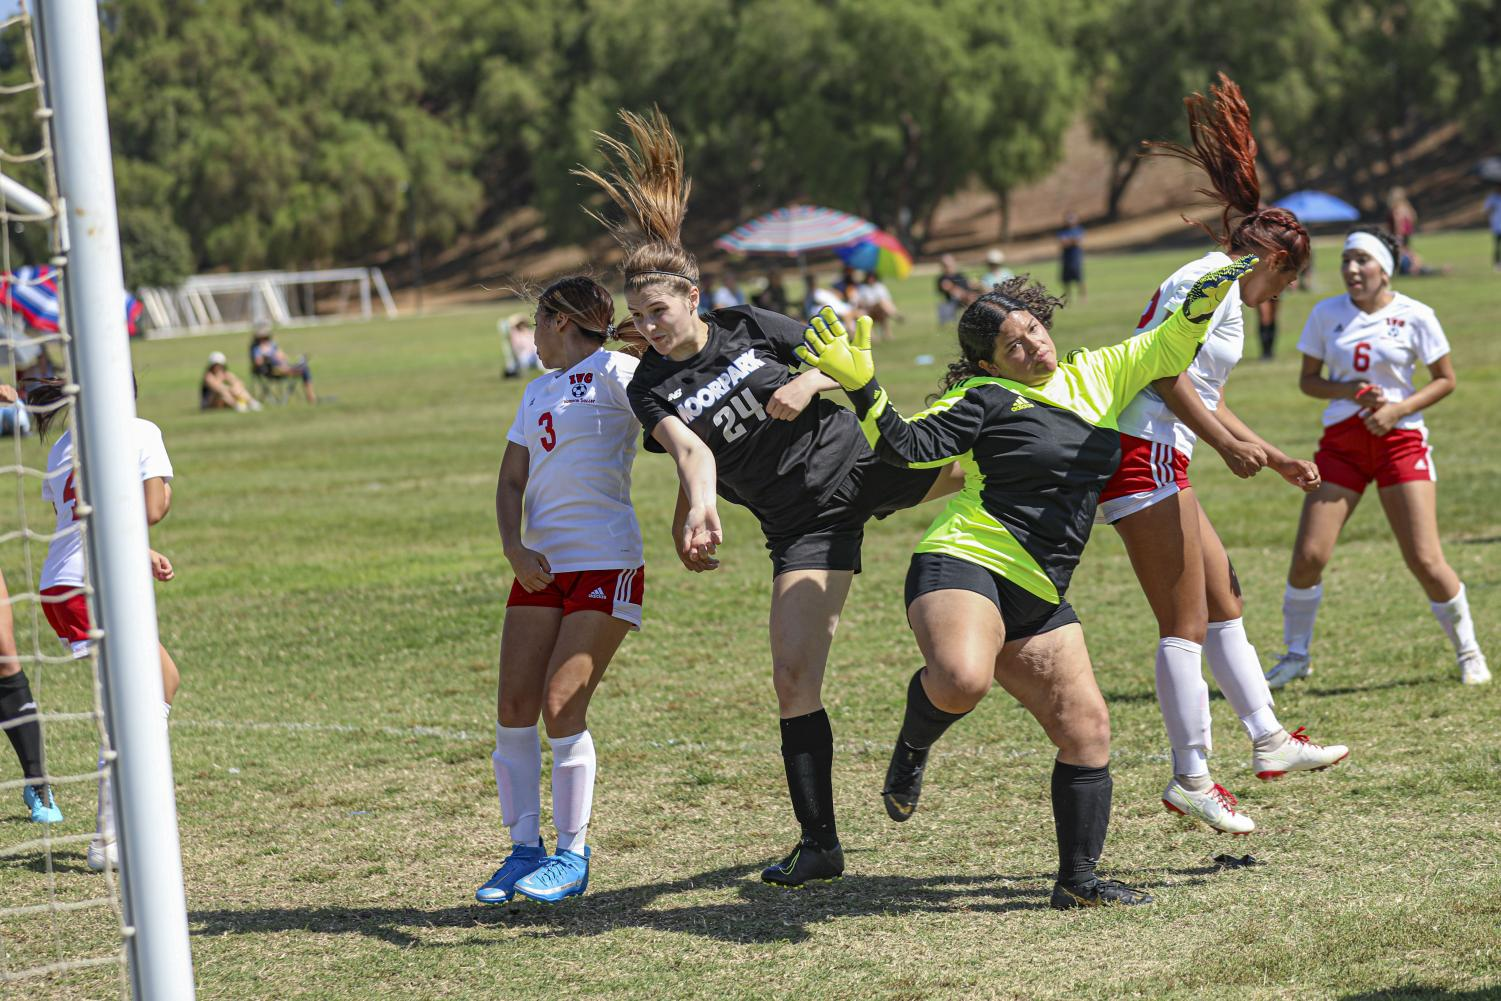 Freshman Riley Tripp headbutts in a goal, solidifying the Moorpark Raiders victory over Imperial Valley on Friday, Aug. 27, in Moorpark, CA. The Raiders defeated Imperial Valley, 4-0, in their season opener.